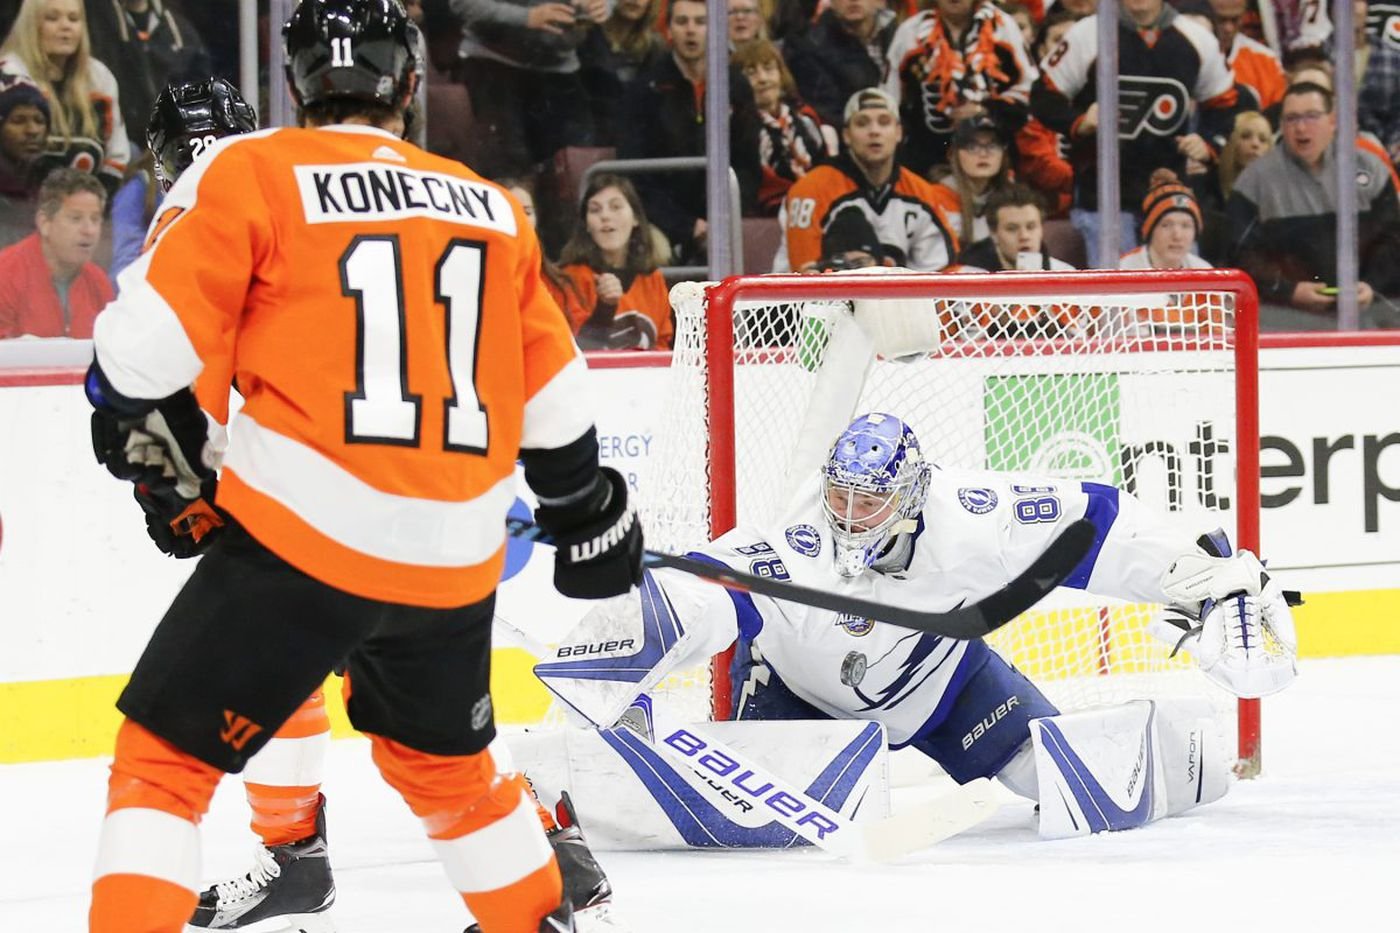 Flyers-Coyotes preview: Philly looking for payback against lowly Arizona